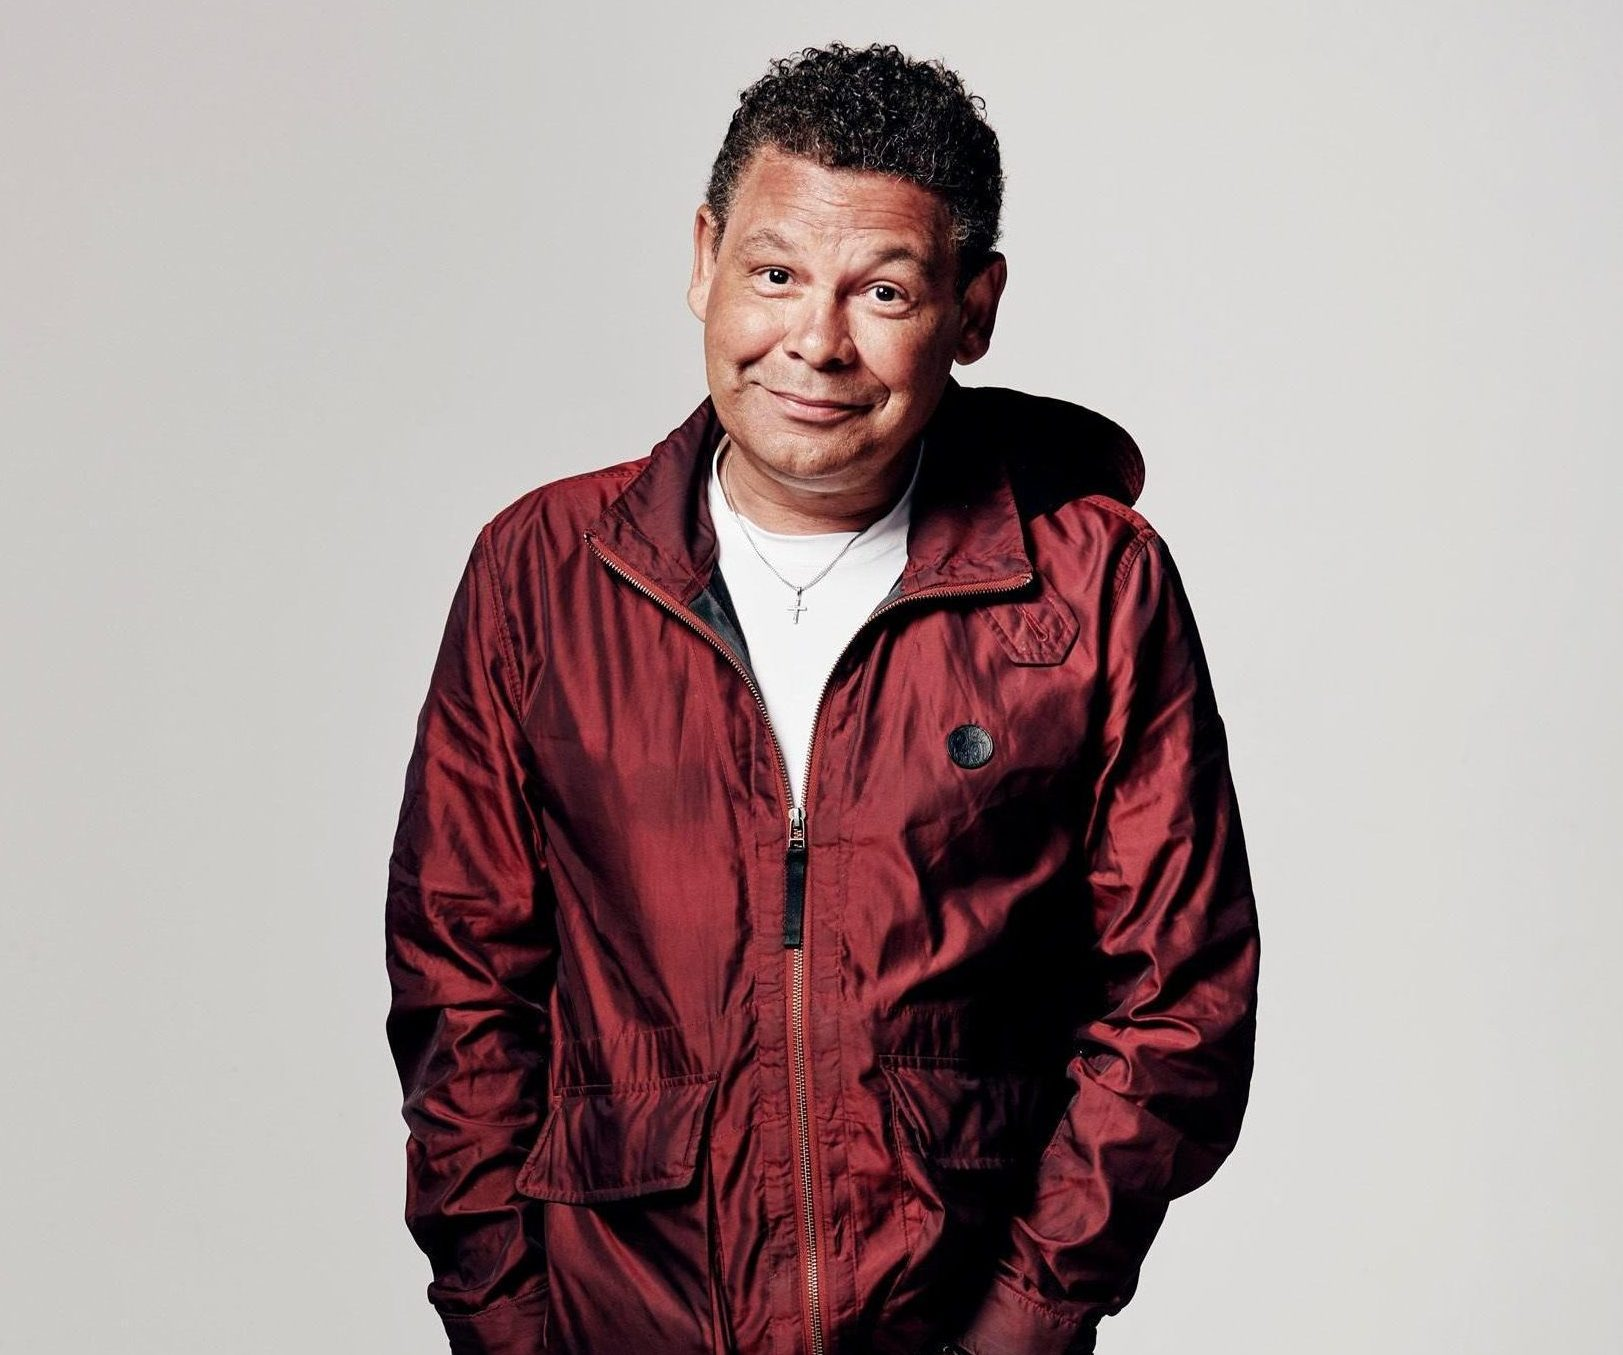 Craig Charles (born 1964) nudes (16 foto and video), Topless, Fappening, Instagram, cleavage 2018